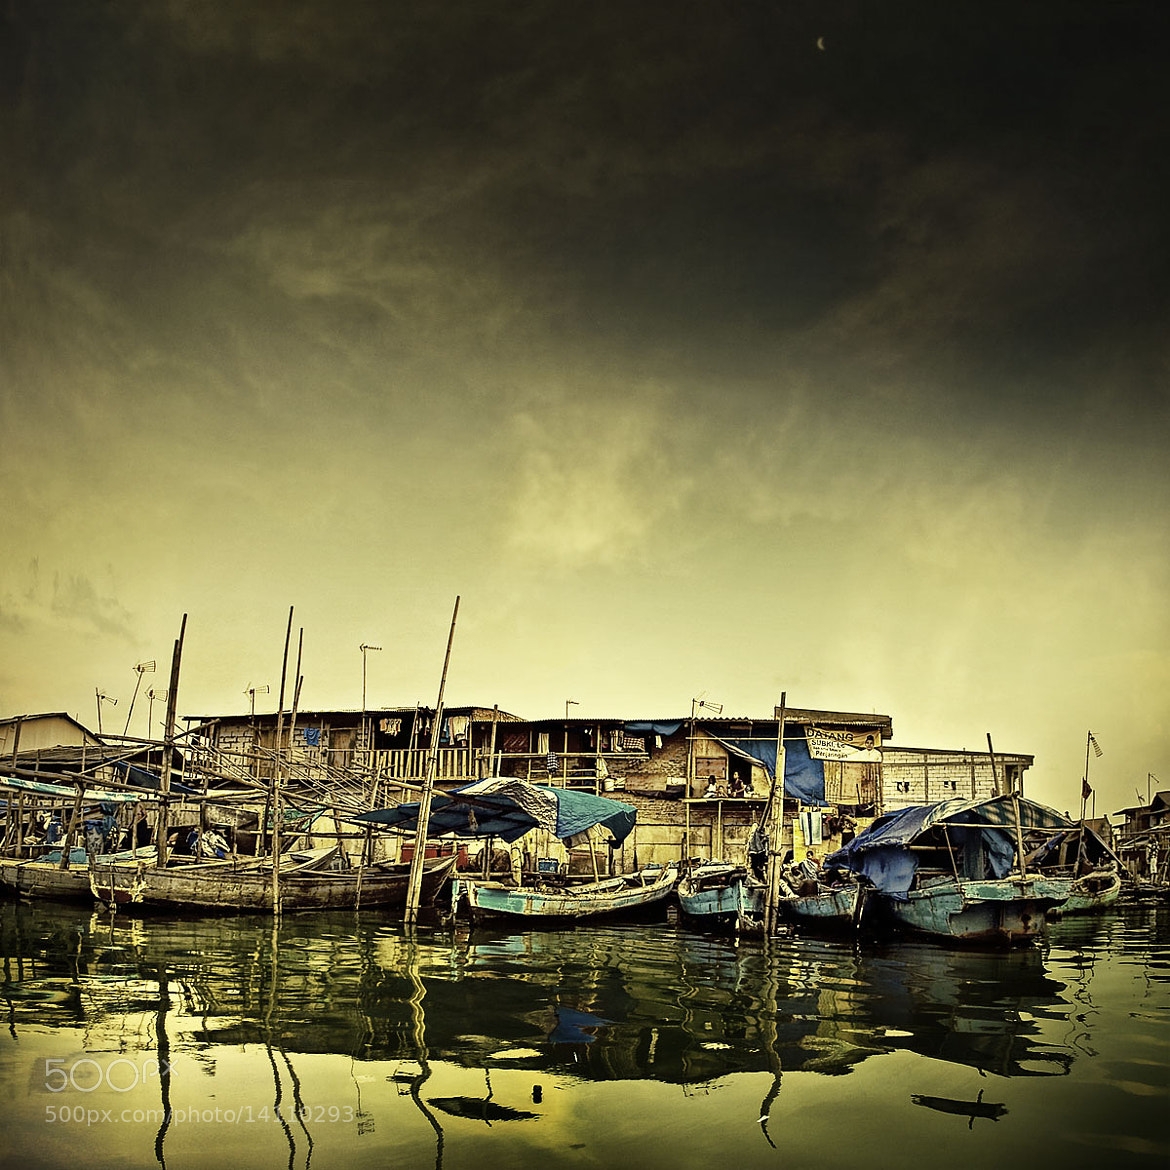 Photograph SLUM by Reza Ravasia on 500px